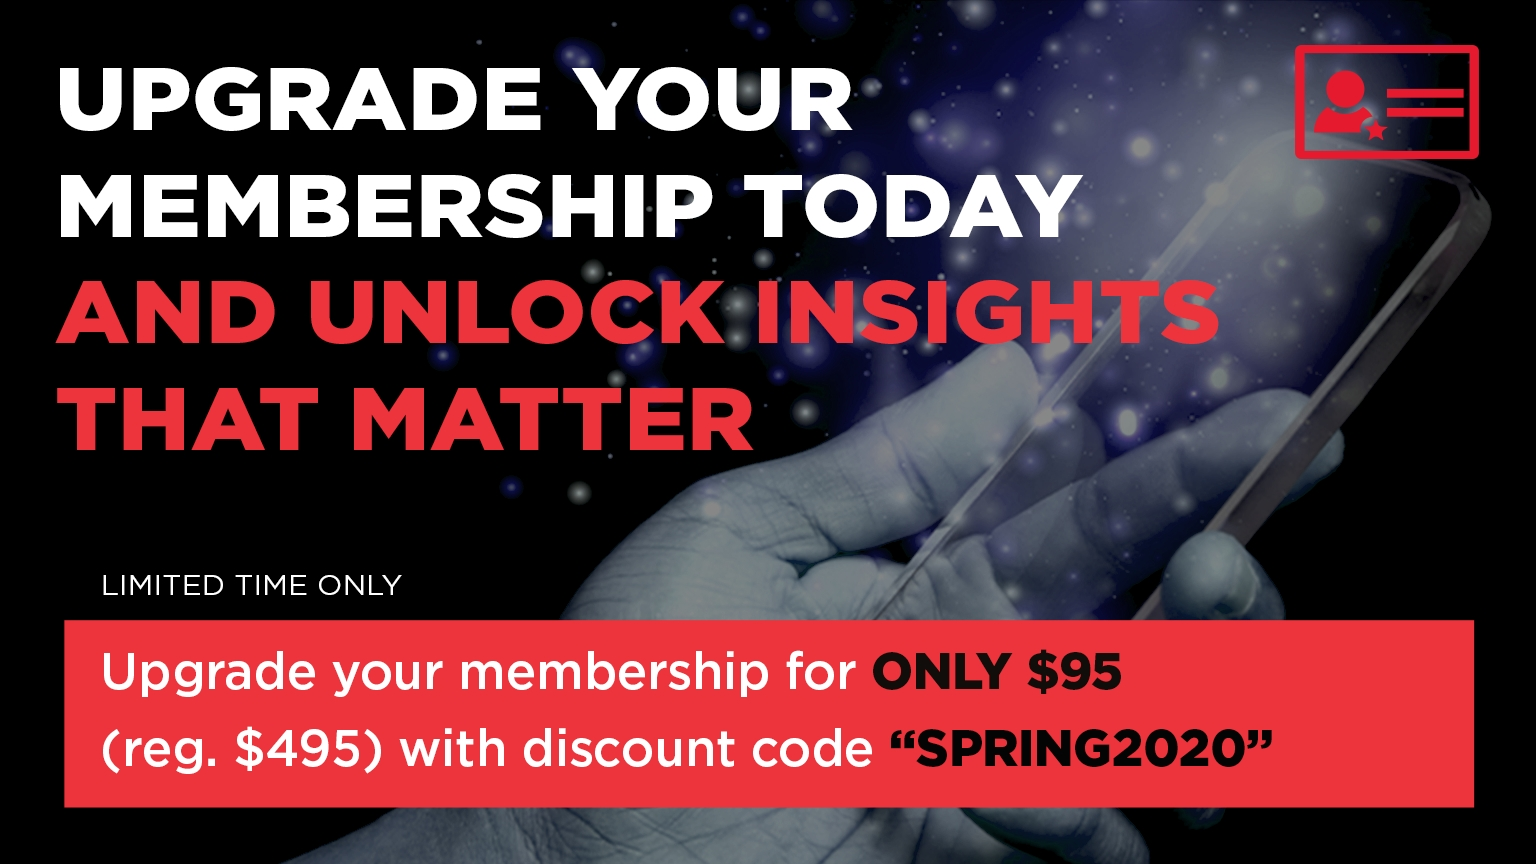 Upgrade membership for $95 with discount code SPRING2020